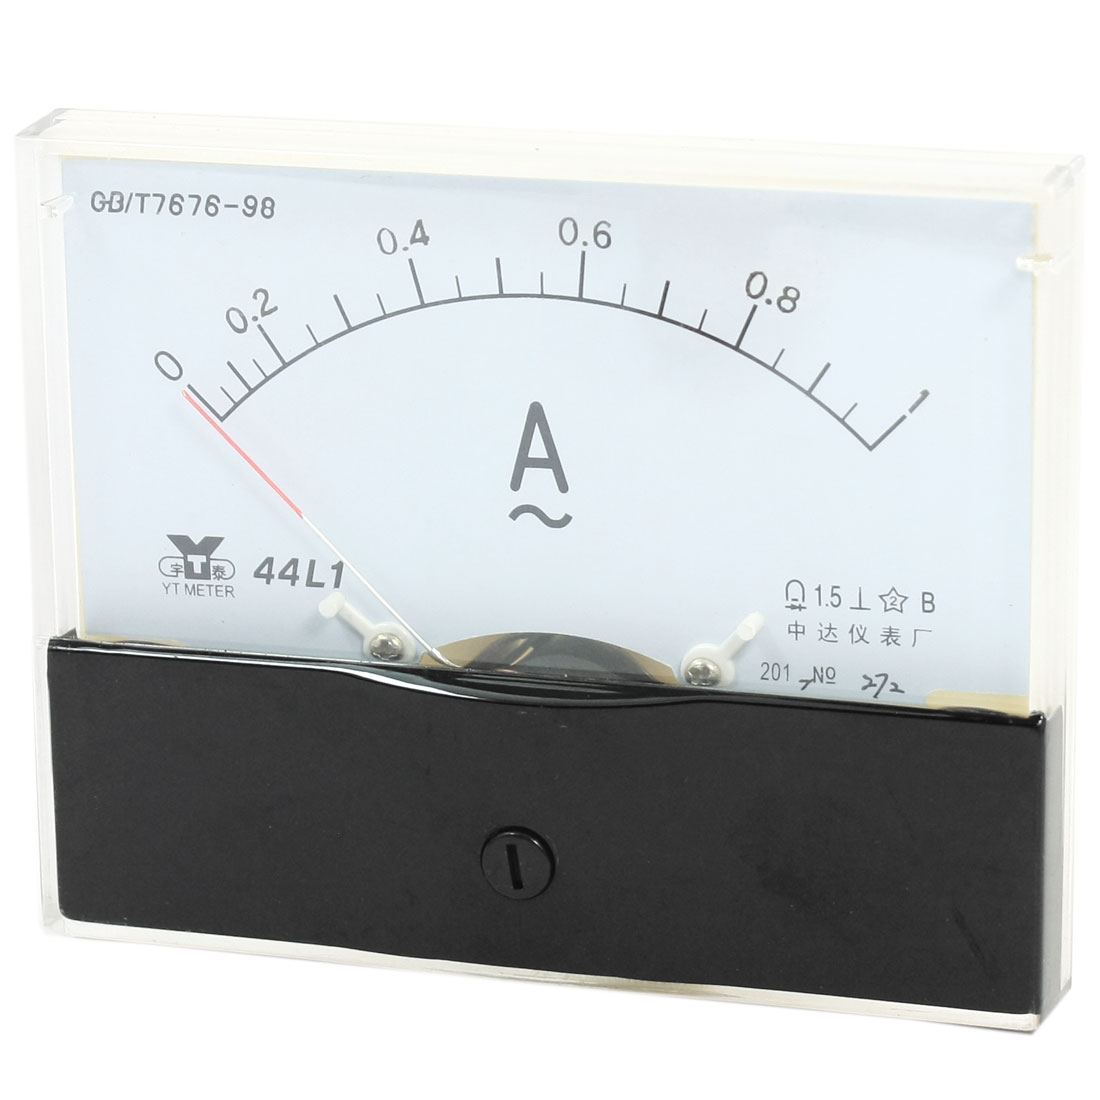 Measurement Tool Panel Mount Analog Ammeter Gauge AC 0 - 1A Measuring Range 44L1